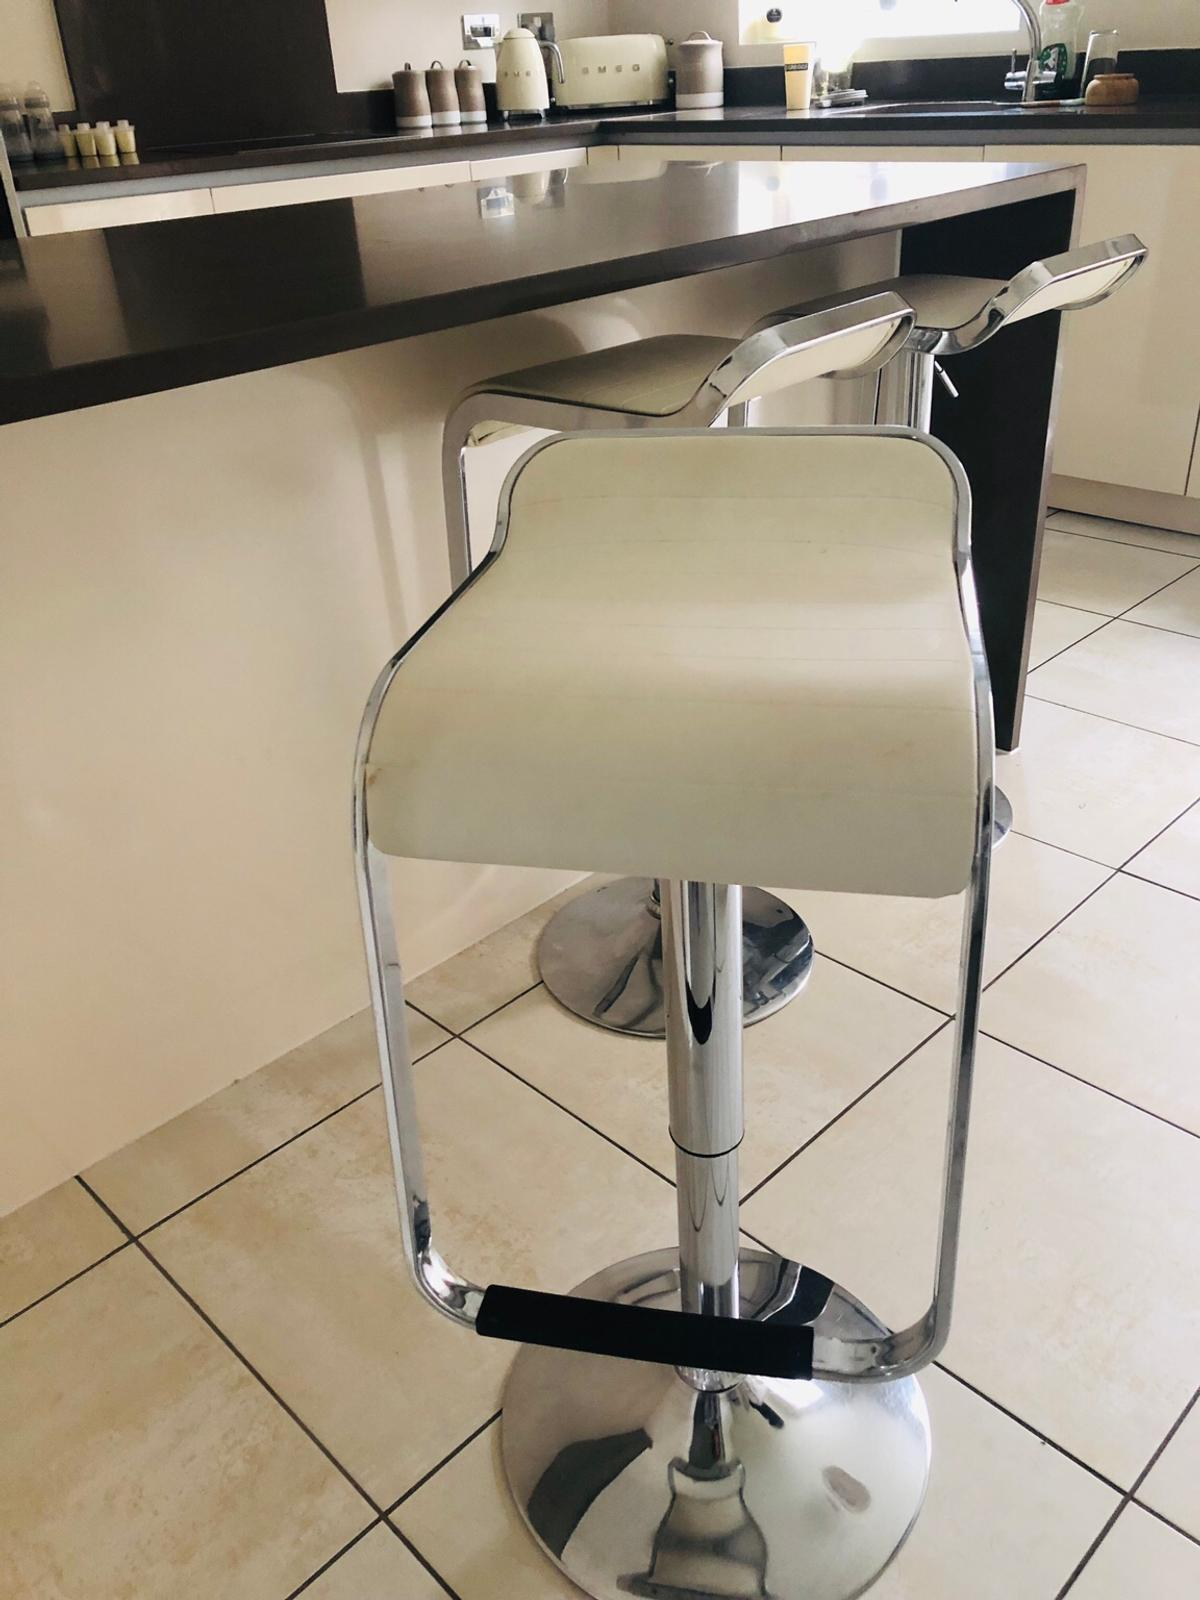 hot sale online 23e53 d76a3 Kitchen Bar Stools in M28 Salford for £55.00 for sale - Shpock